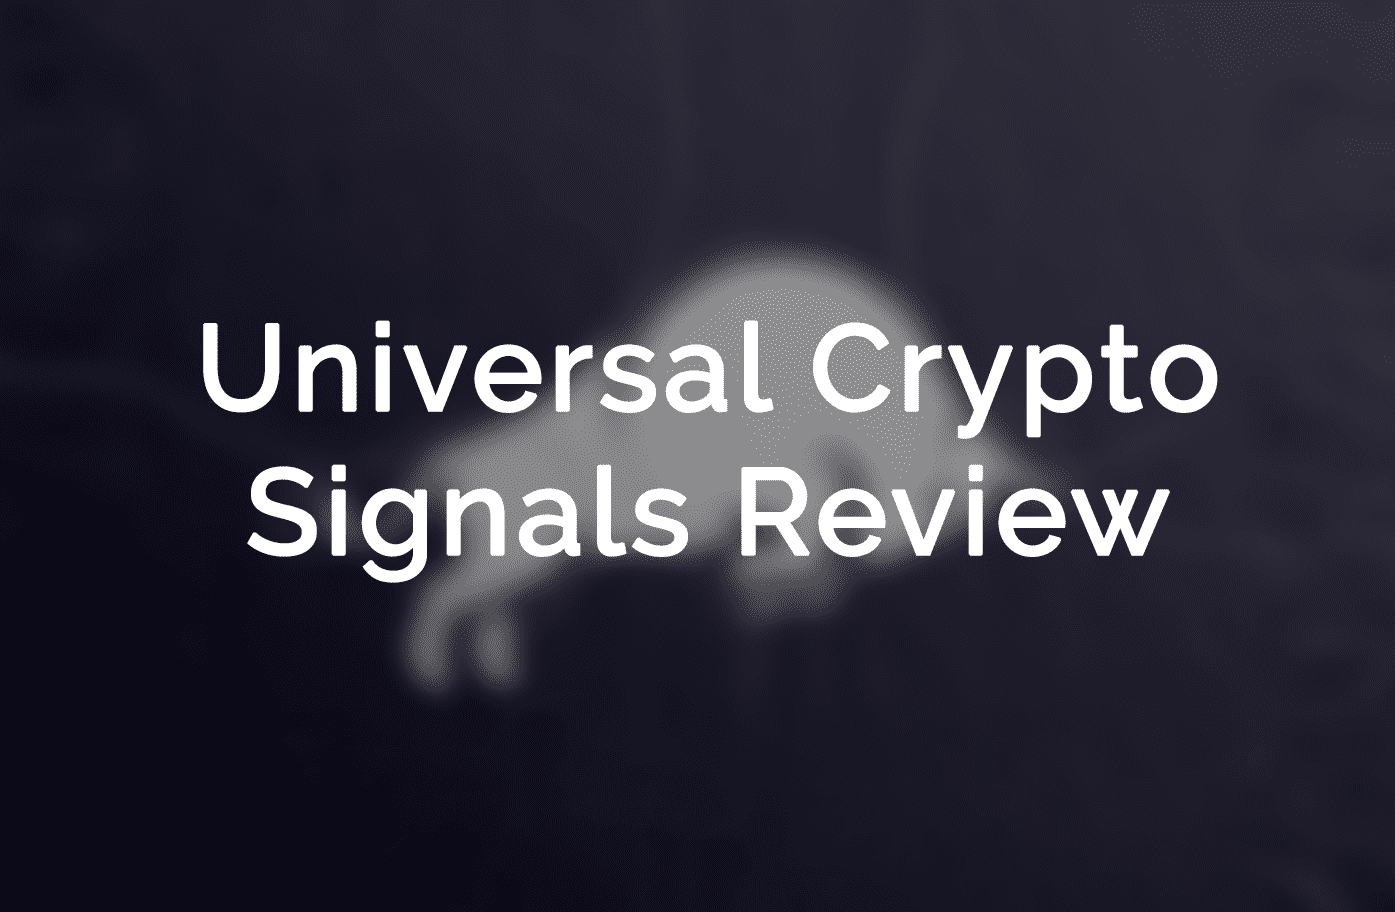 universal crypto signals review by safetrading